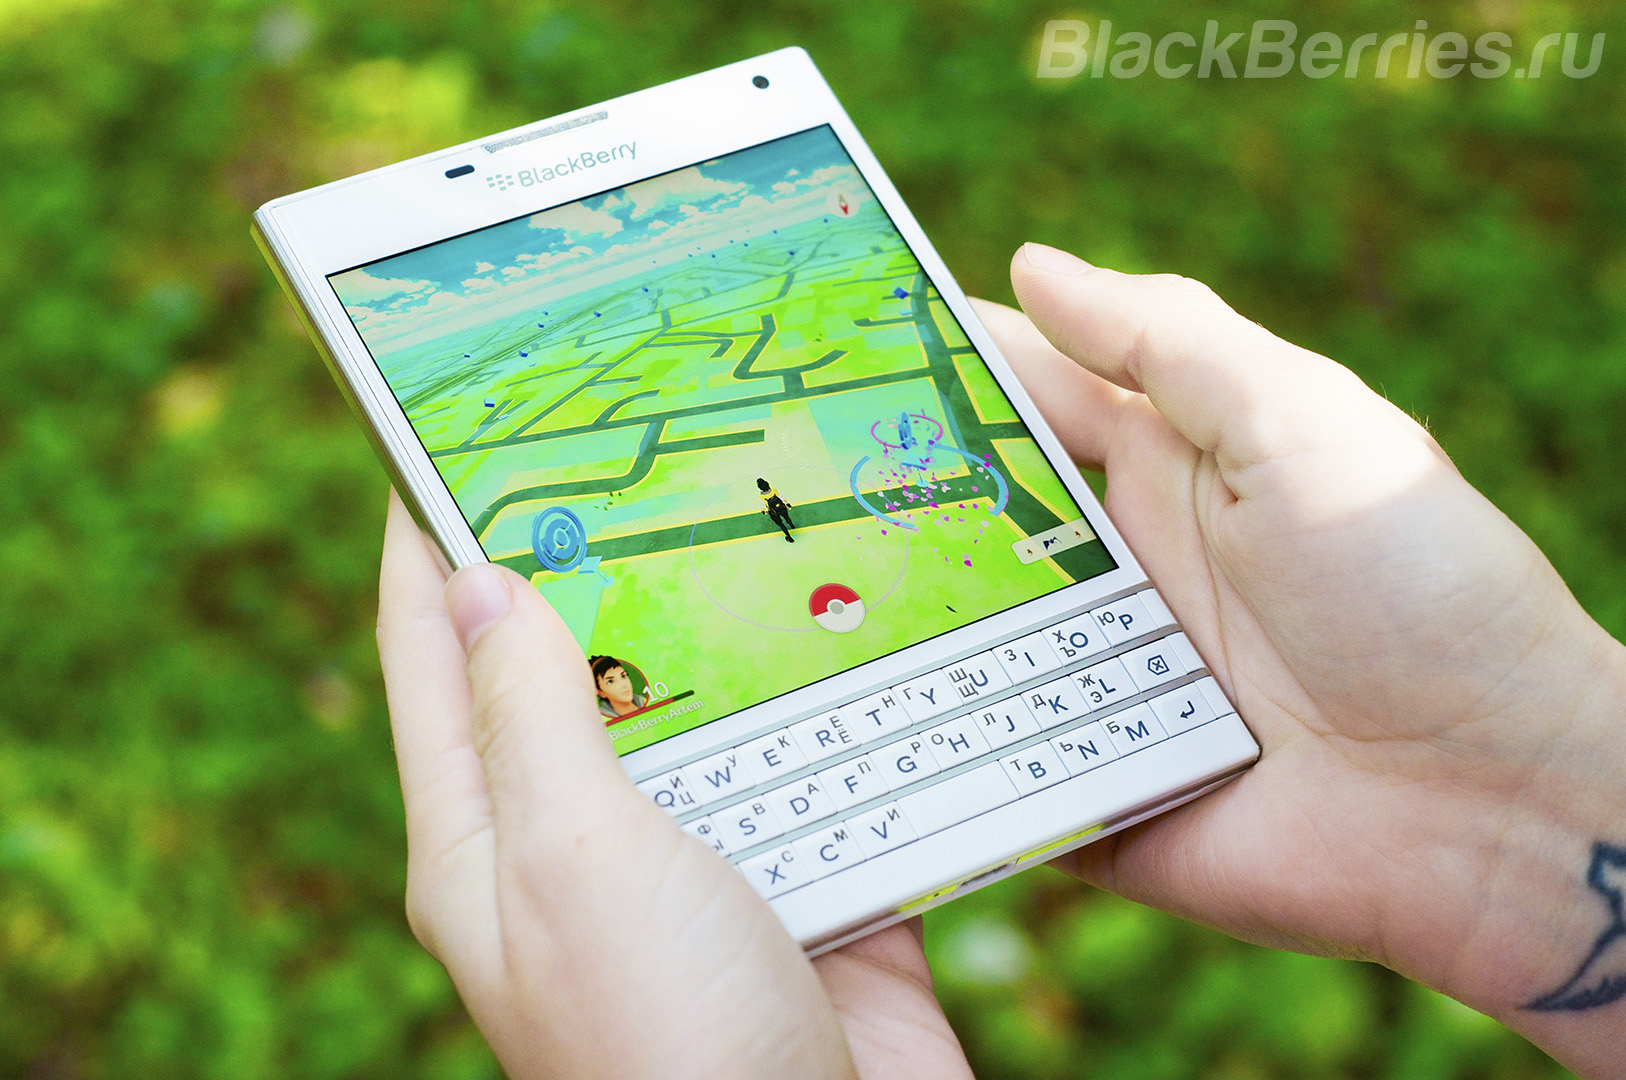 Pokemon-Go-BlackBerry-11